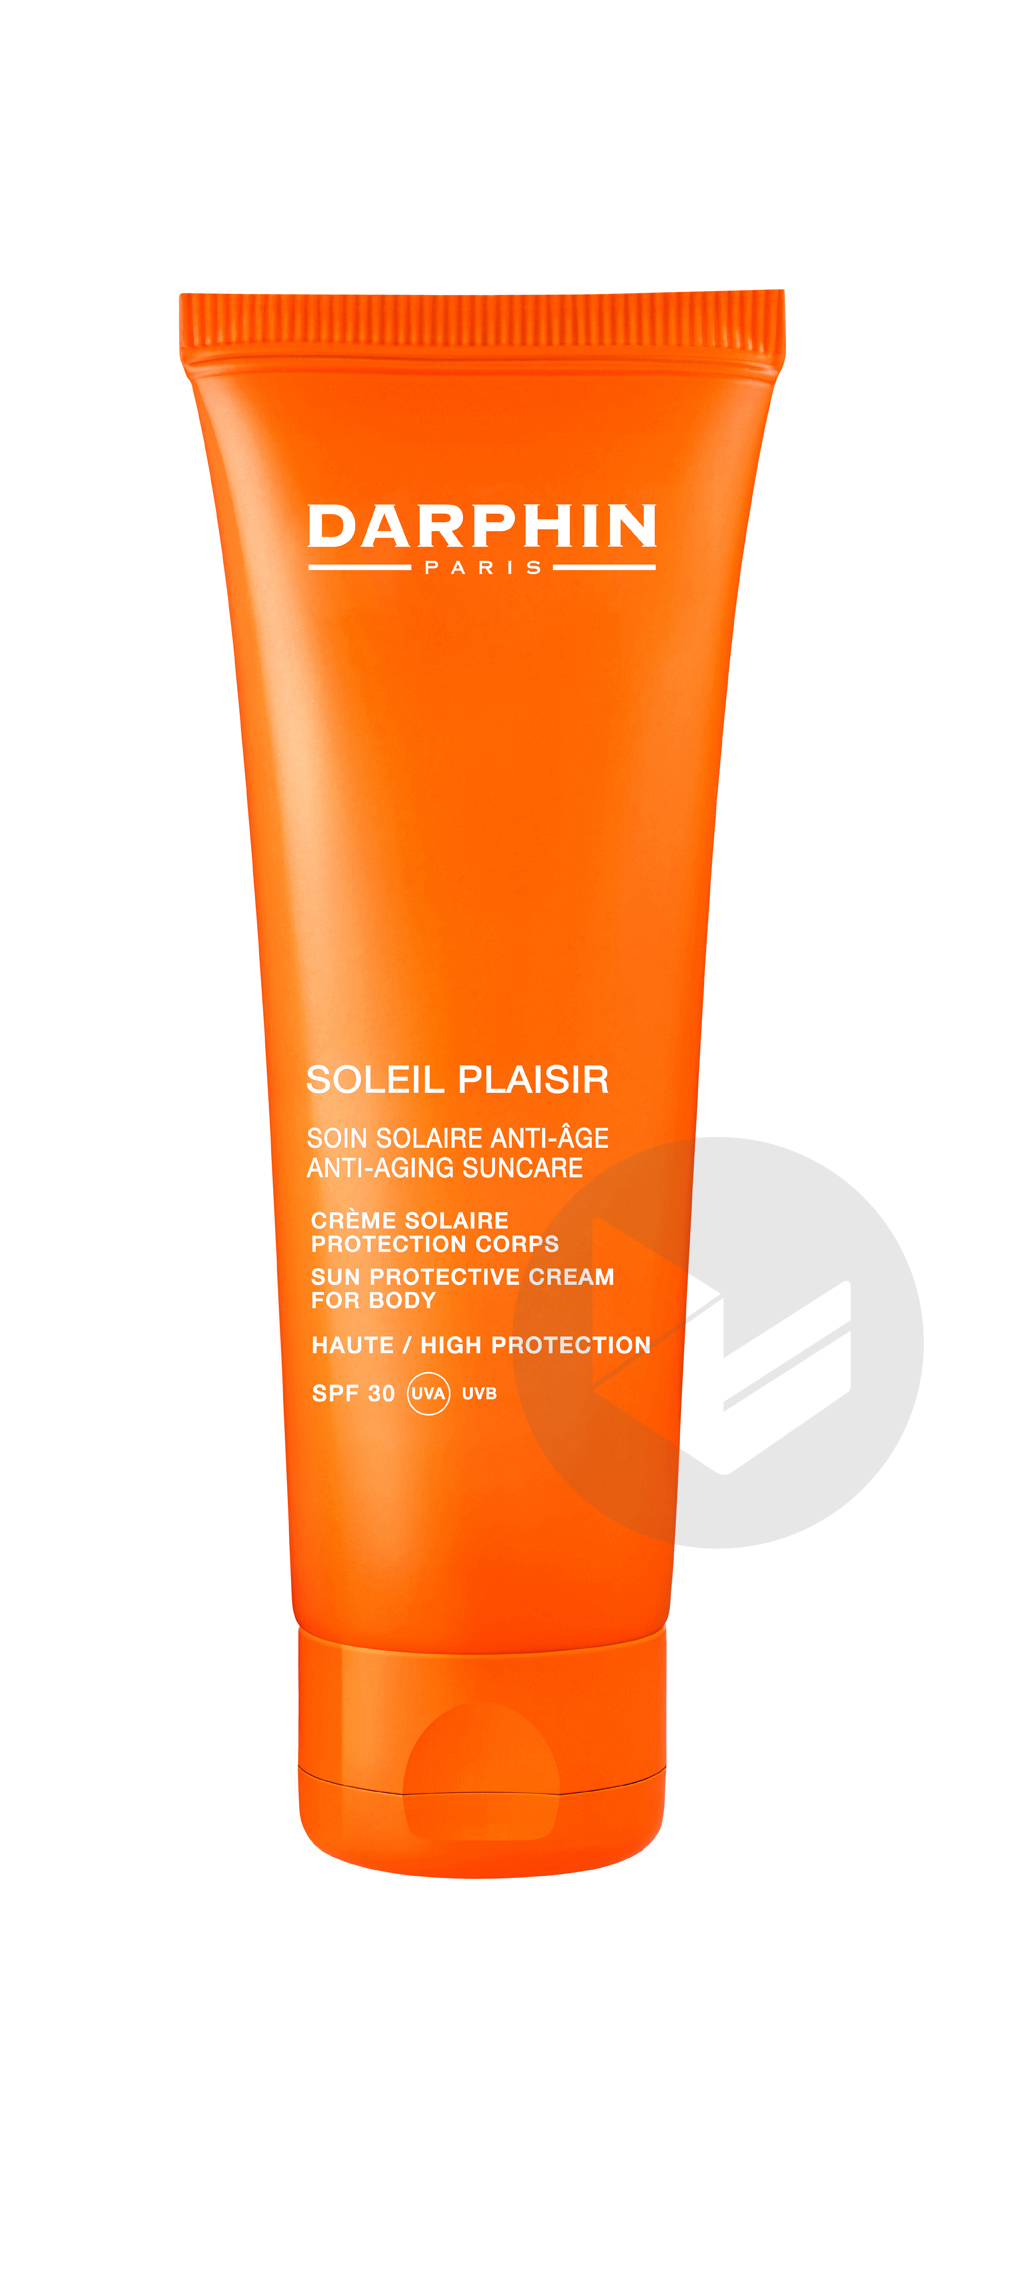 Soin Solaire Anti-âge Corps SPF30 125ml